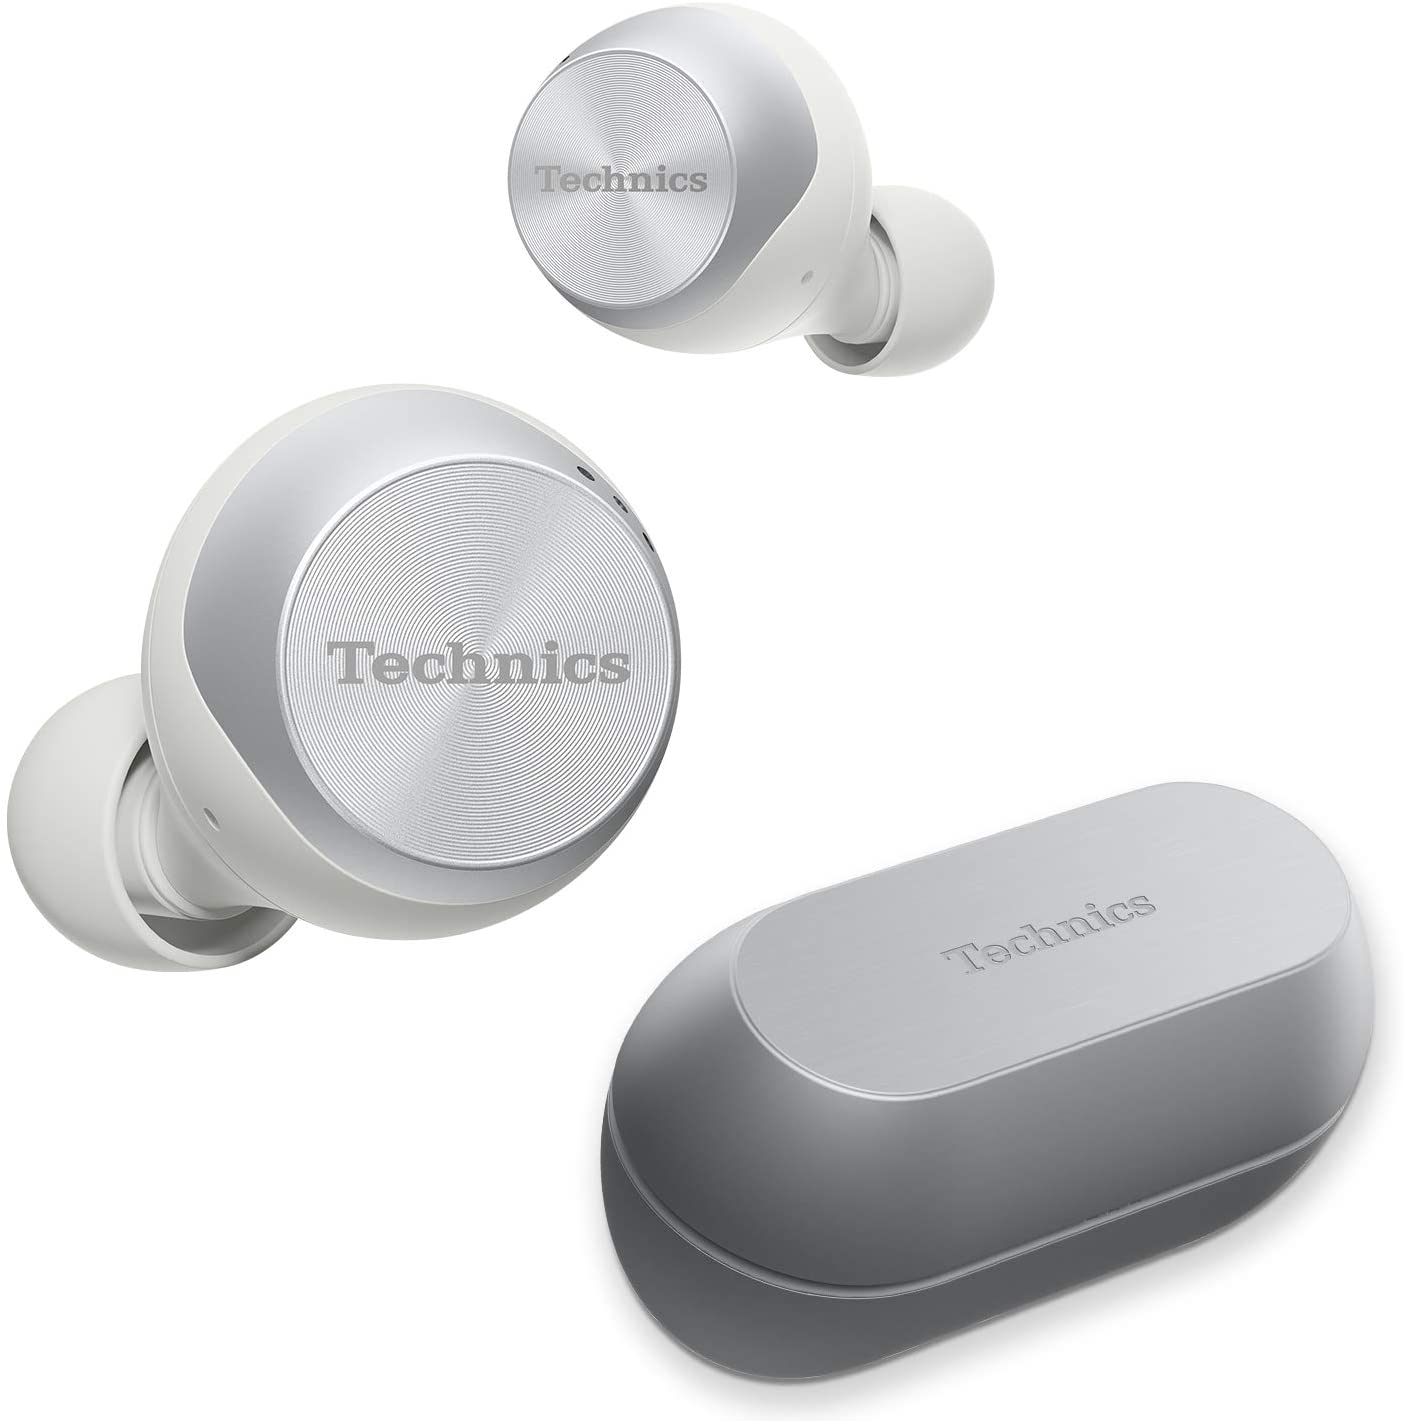 Technics True Wireless Earbuds with Industry Leading Noise Cancelling | Bluetooth Earbuds | Dual Hybrid Technology, Hi-Fi Sound, Compact Design | Alexa Compatible |(EAH-AZ70W-S), Silver